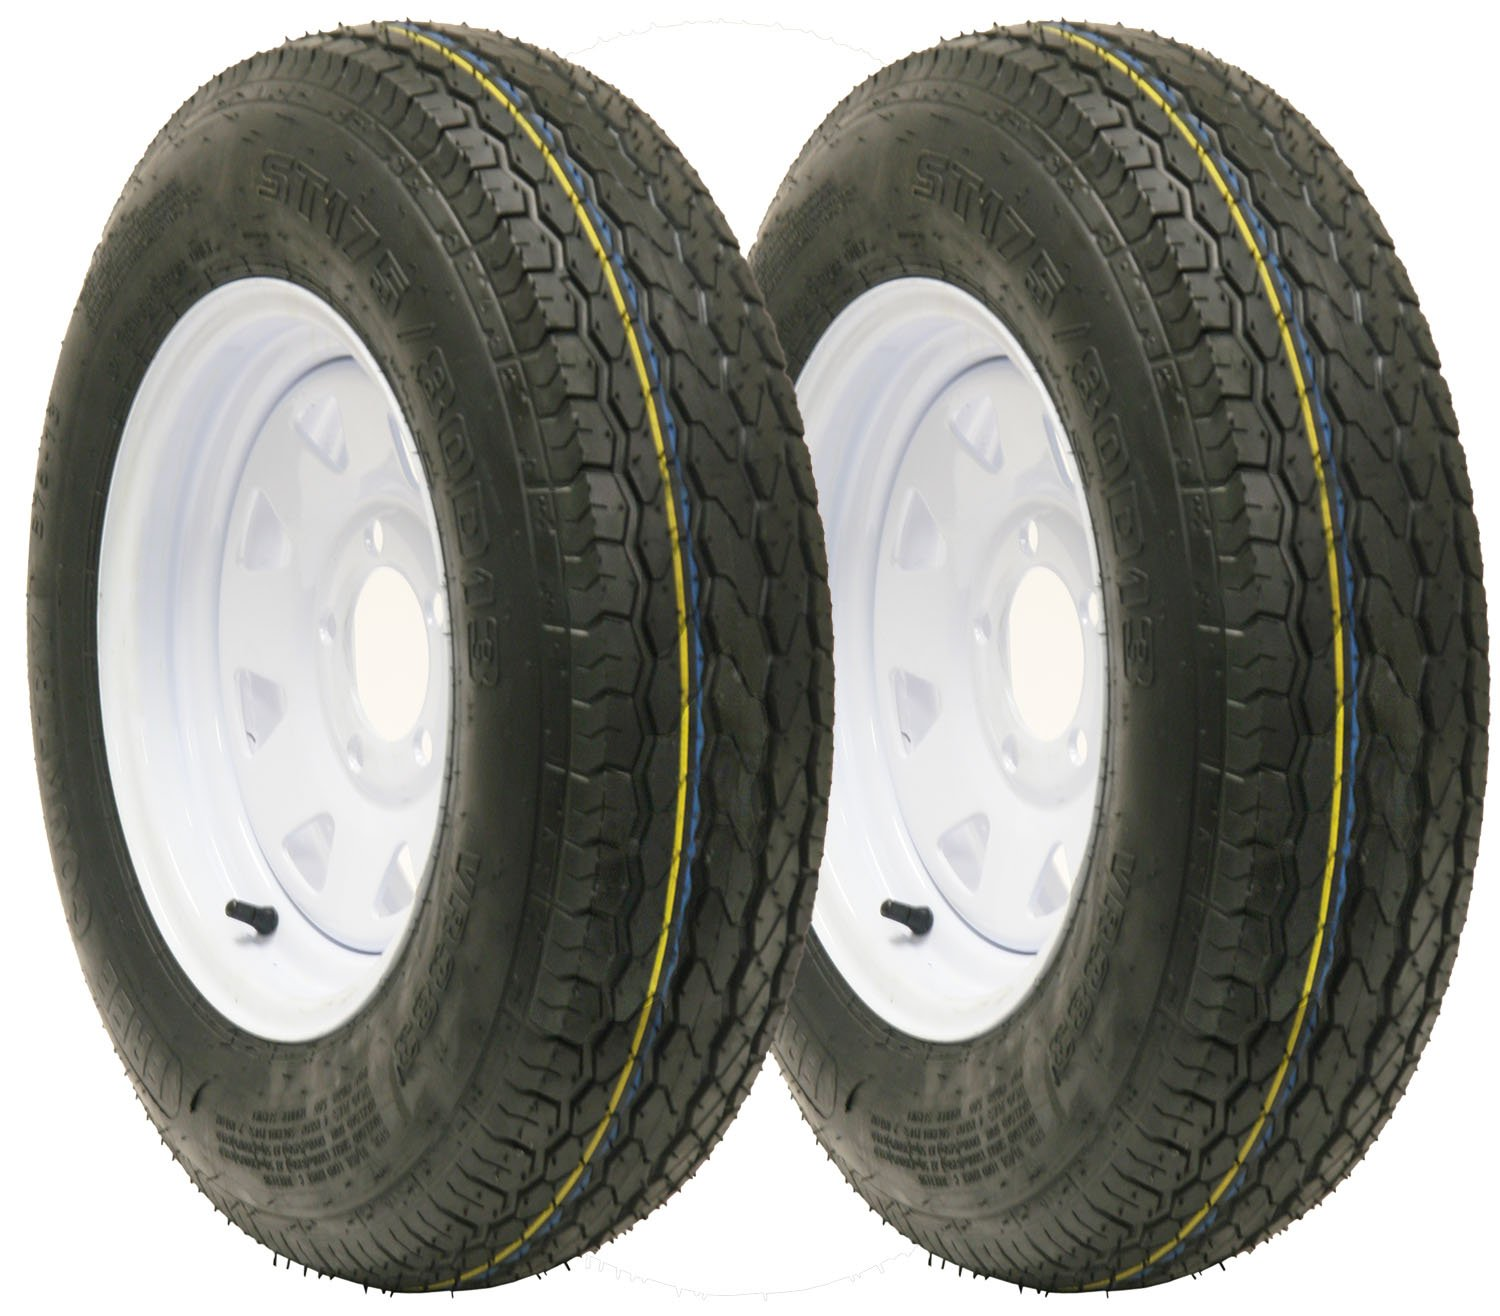 2 New Trailer tire wheel assembly ST175/80D13 8PR on 13'' 5 lug white spoke wheel-15011 by Free Country (Image #1)